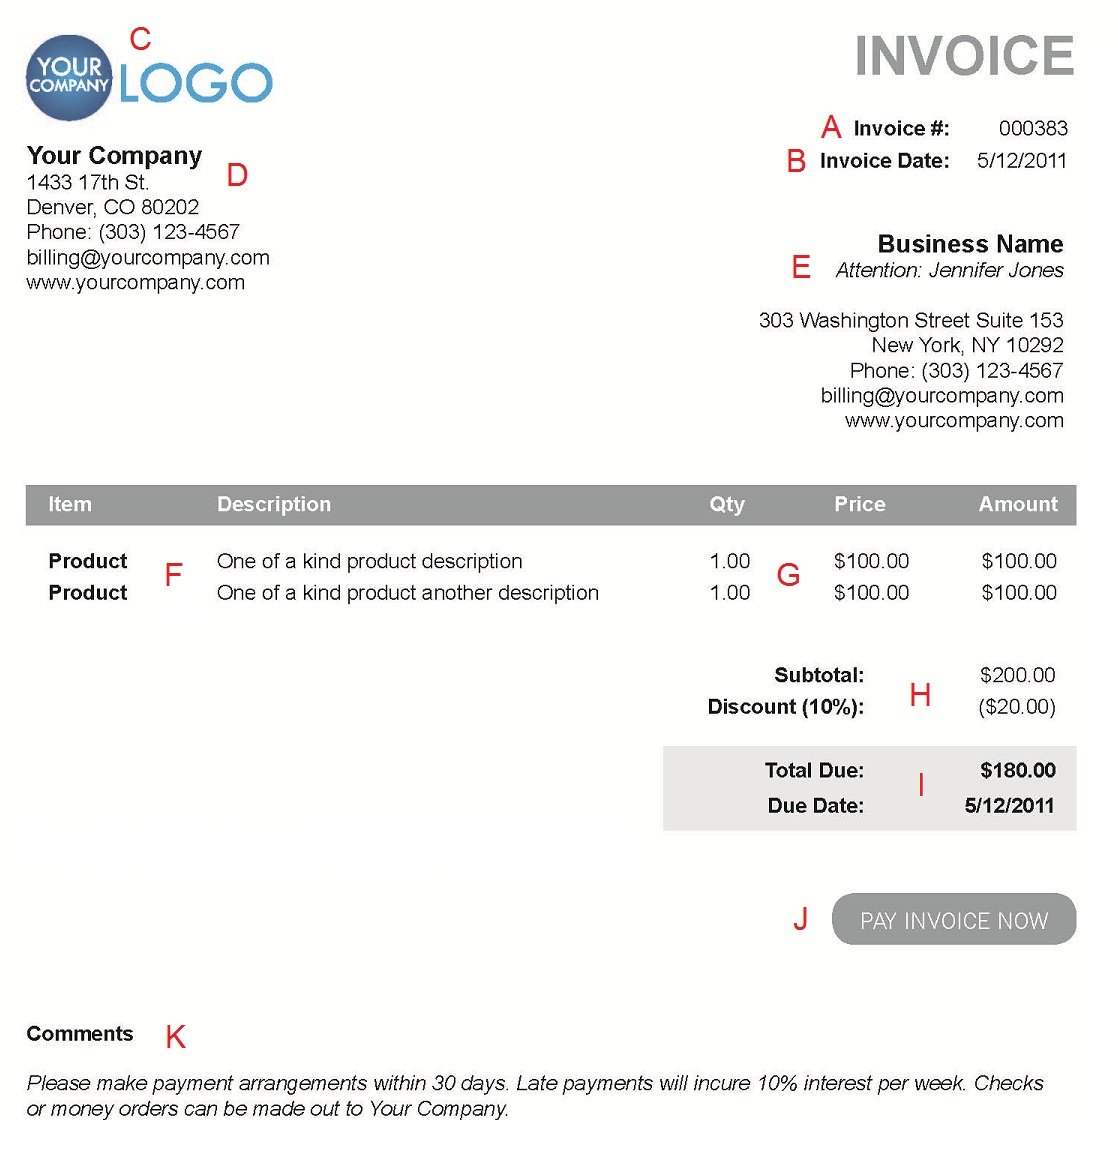 Aaaaeroincus  Unique The  Different Sections Of An Electronic Payment Invoice With Great A  With Breathtaking Pay Invoice Template Also Sage Email Invoices In Addition Receiving Invoice And Cash Sales Invoice Sample As Well As Terms And Conditions In Invoice Additionally Google Invoice Template Free From Paysimplecom With Aaaaeroincus  Great The  Different Sections Of An Electronic Payment Invoice With Breathtaking A  And Unique Pay Invoice Template Also Sage Email Invoices In Addition Receiving Invoice From Paysimplecom